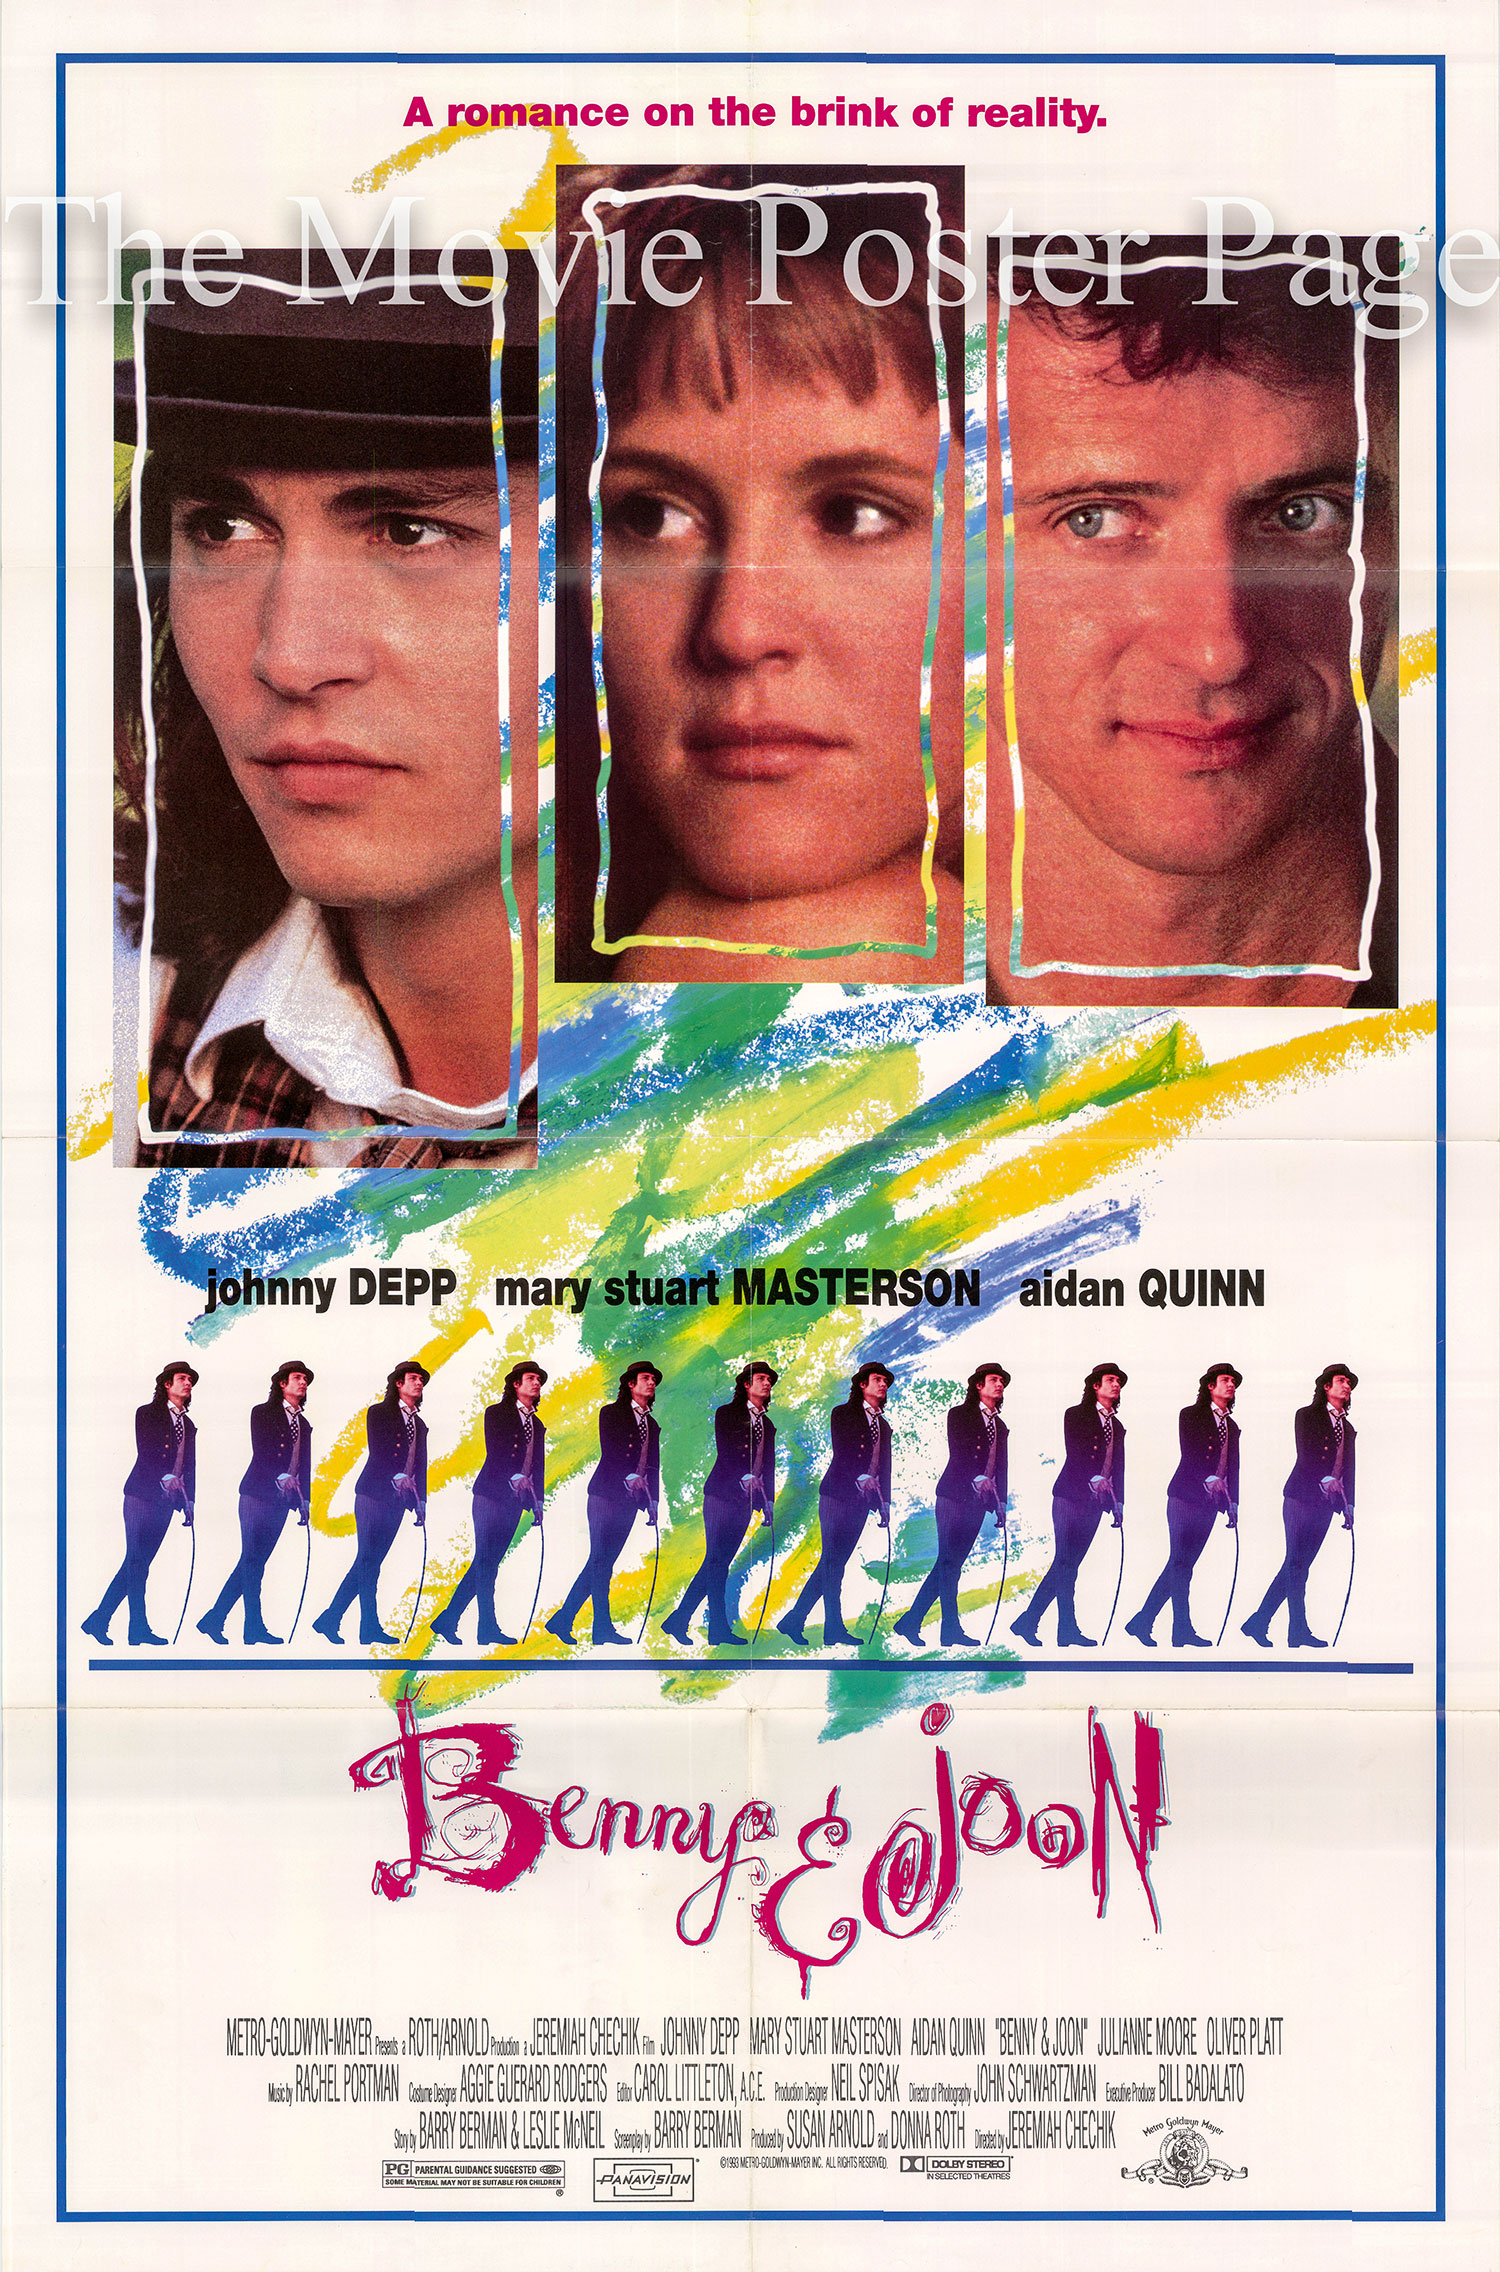 Pictured is a US one-sheet poster for the 1993 Jeremiah S. Chechik film Benny and Joon starring Johnny Depp.